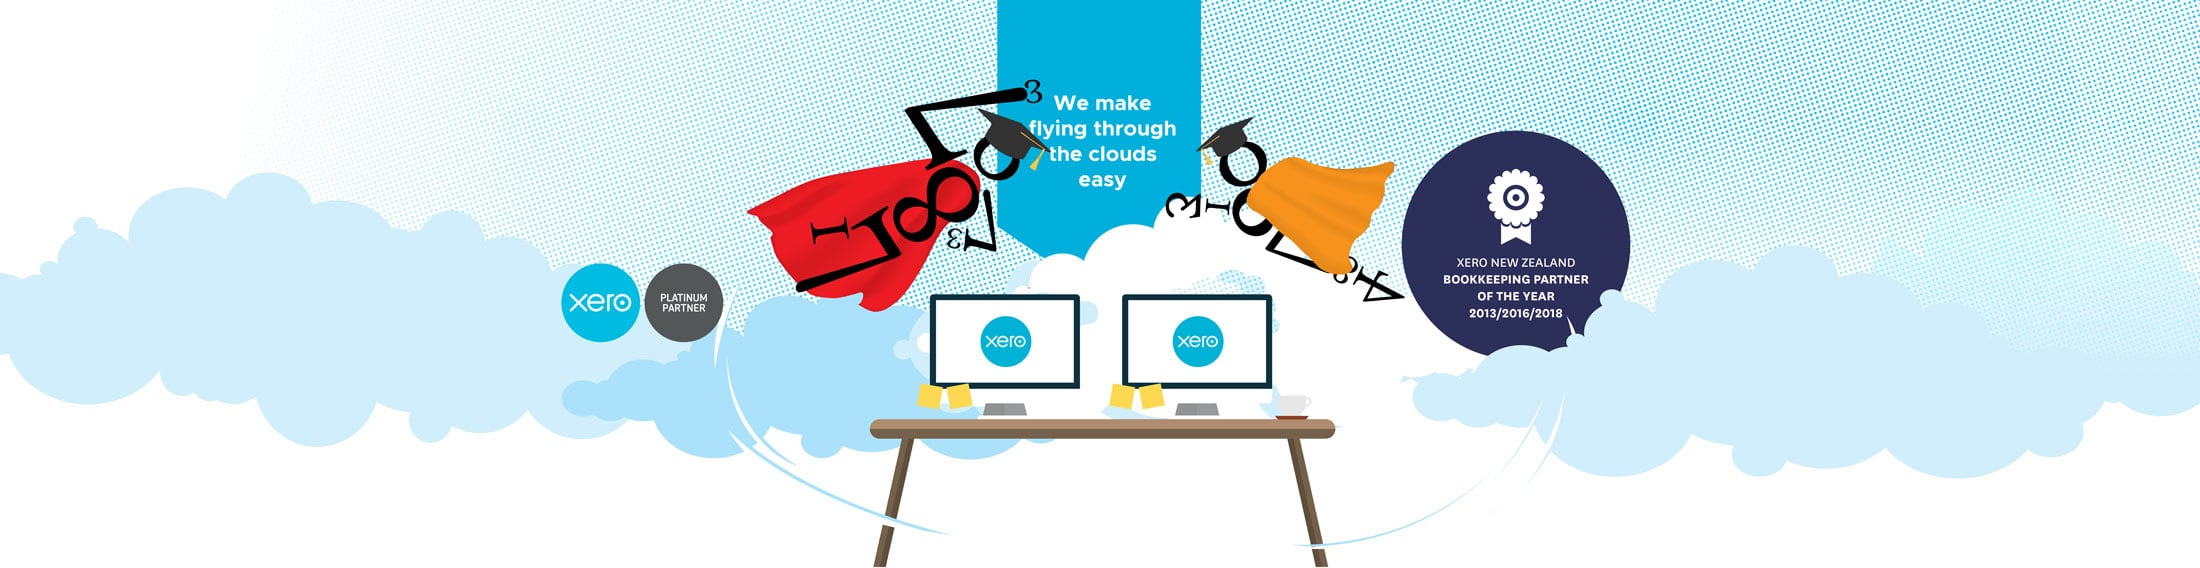 Xero bookkeeping training and education